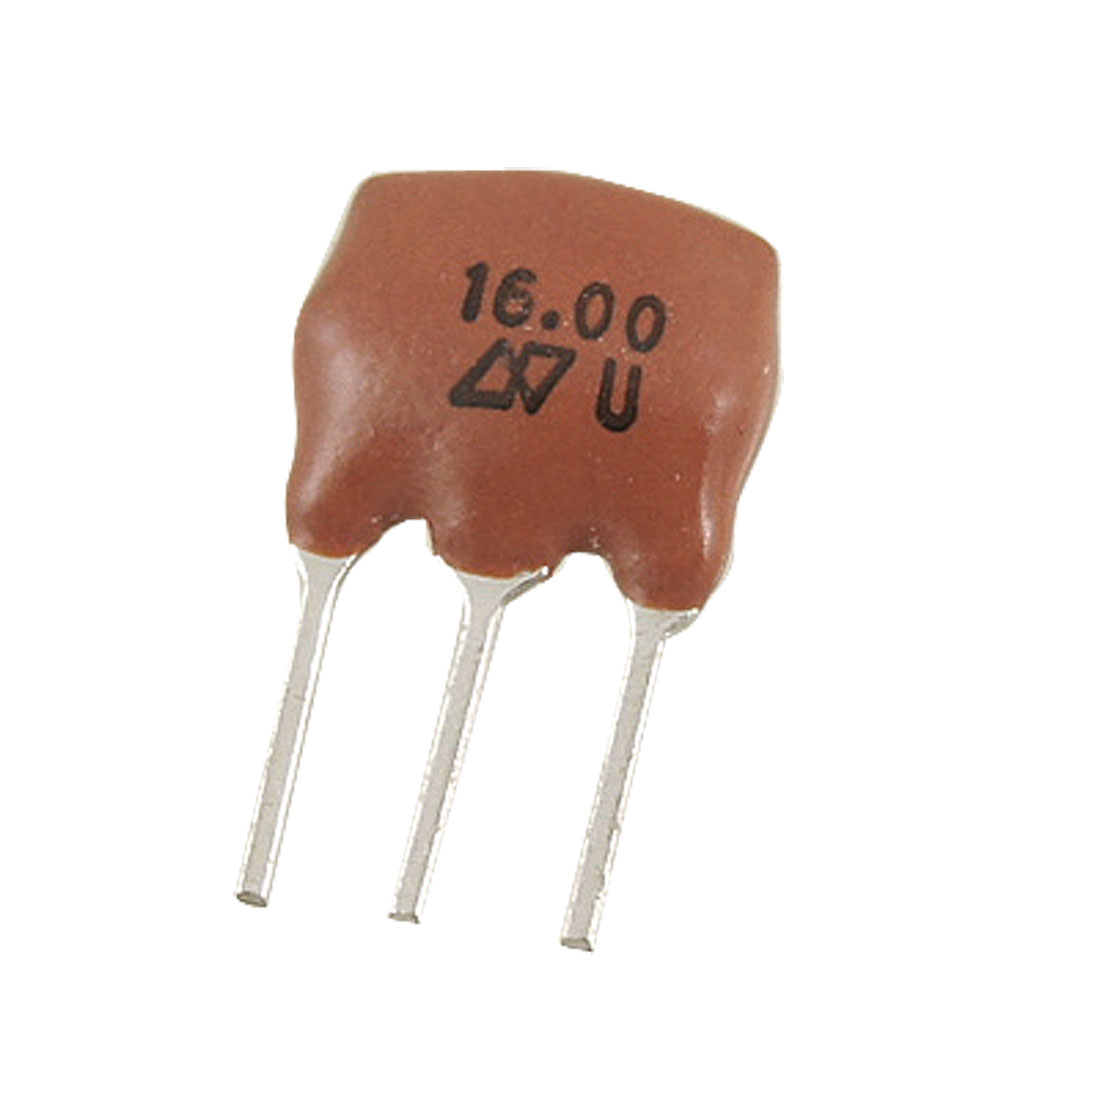 ZTT Series 3 Pins 2.5mm Pitch 16.000 MHz Ceramic Resonators 5 Pcs